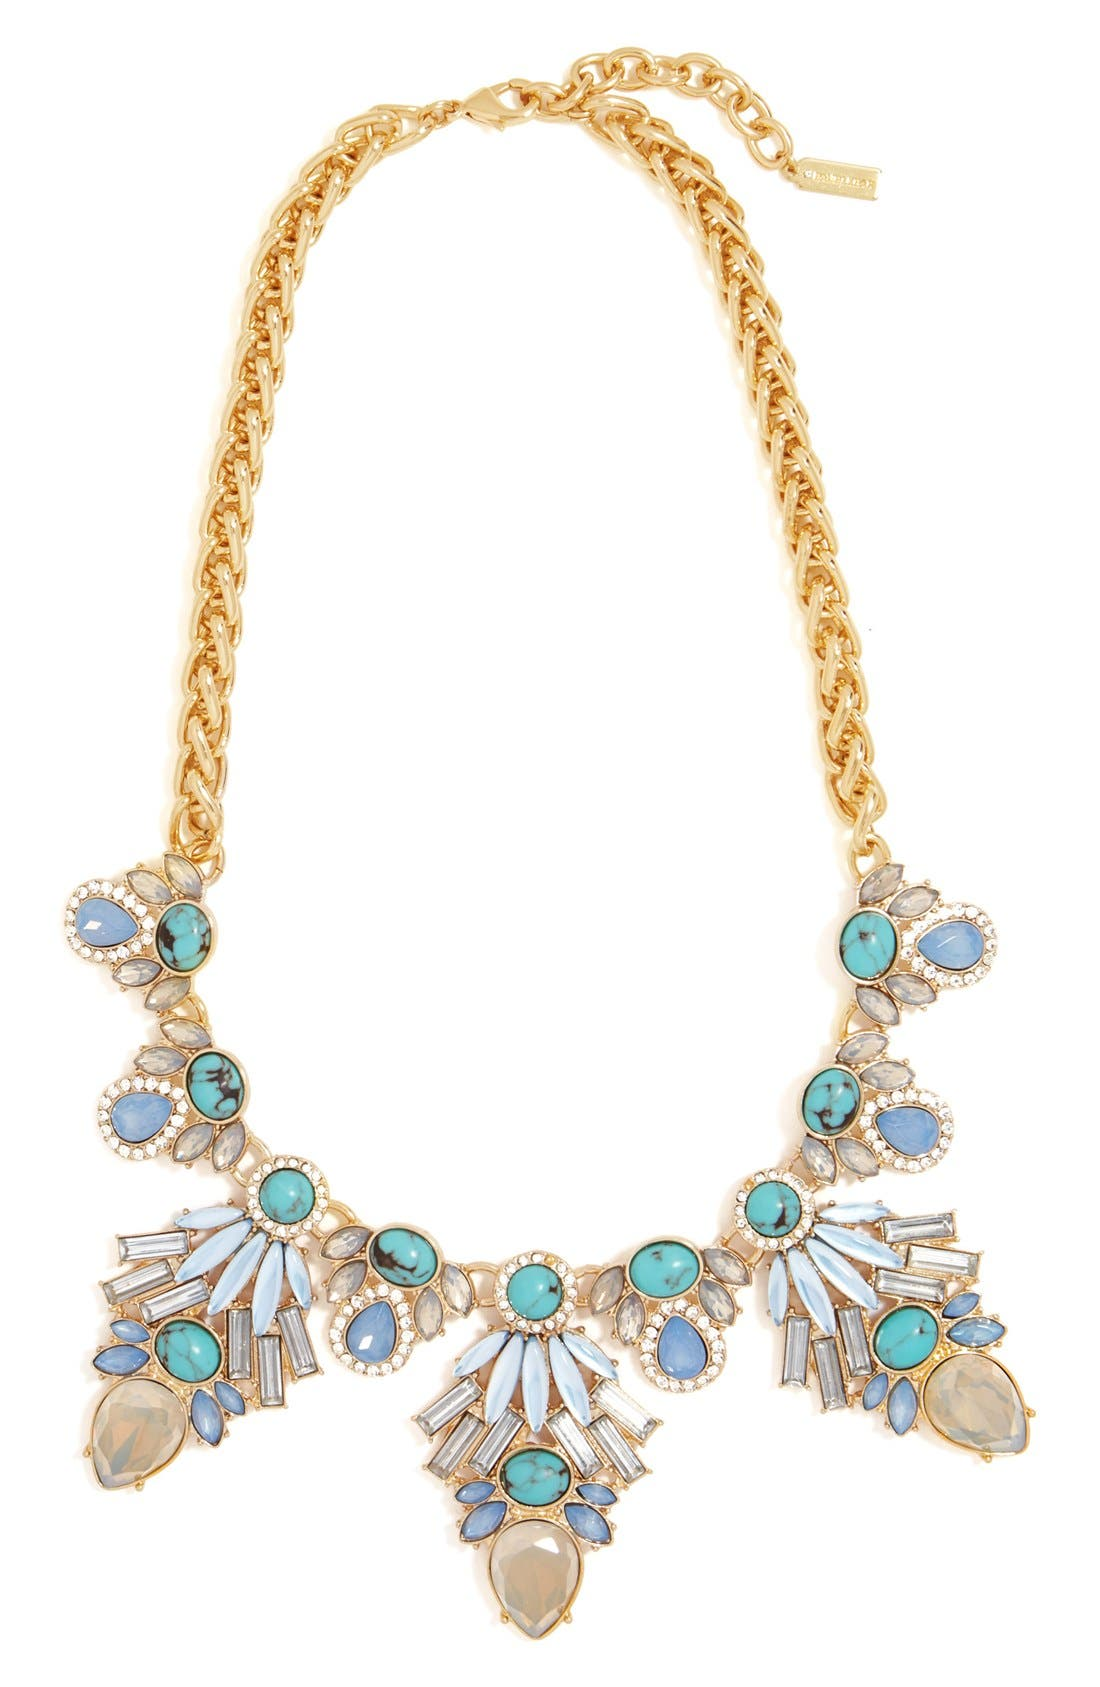 'Baltic' Collar Necklace,                             Main thumbnail 1, color,                             Gold/ Turquoise